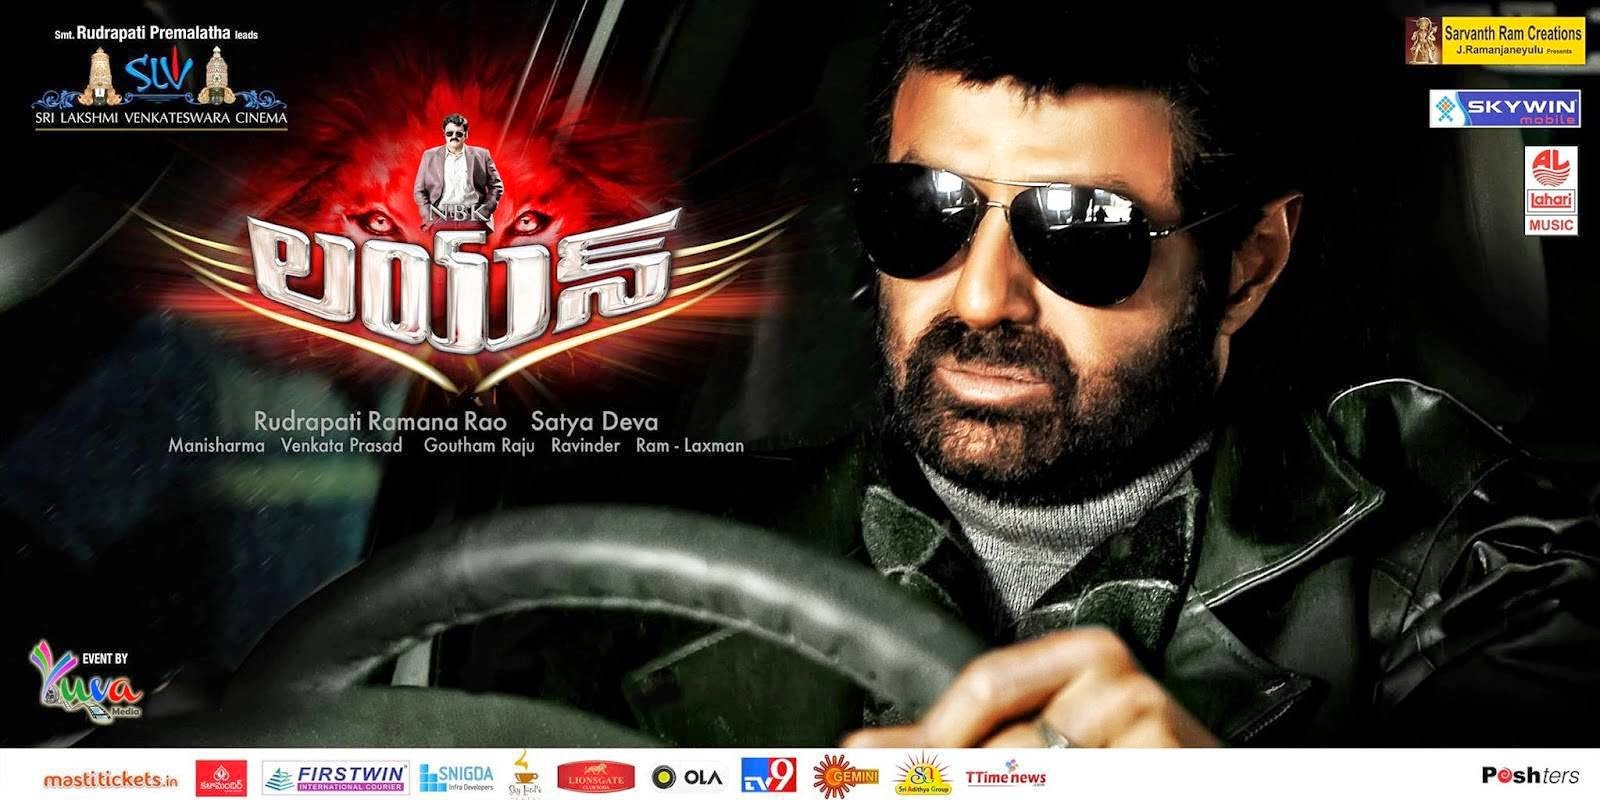 Balakrishna-Trisha-Radhika-Apte-Lion-Movie-review-rating